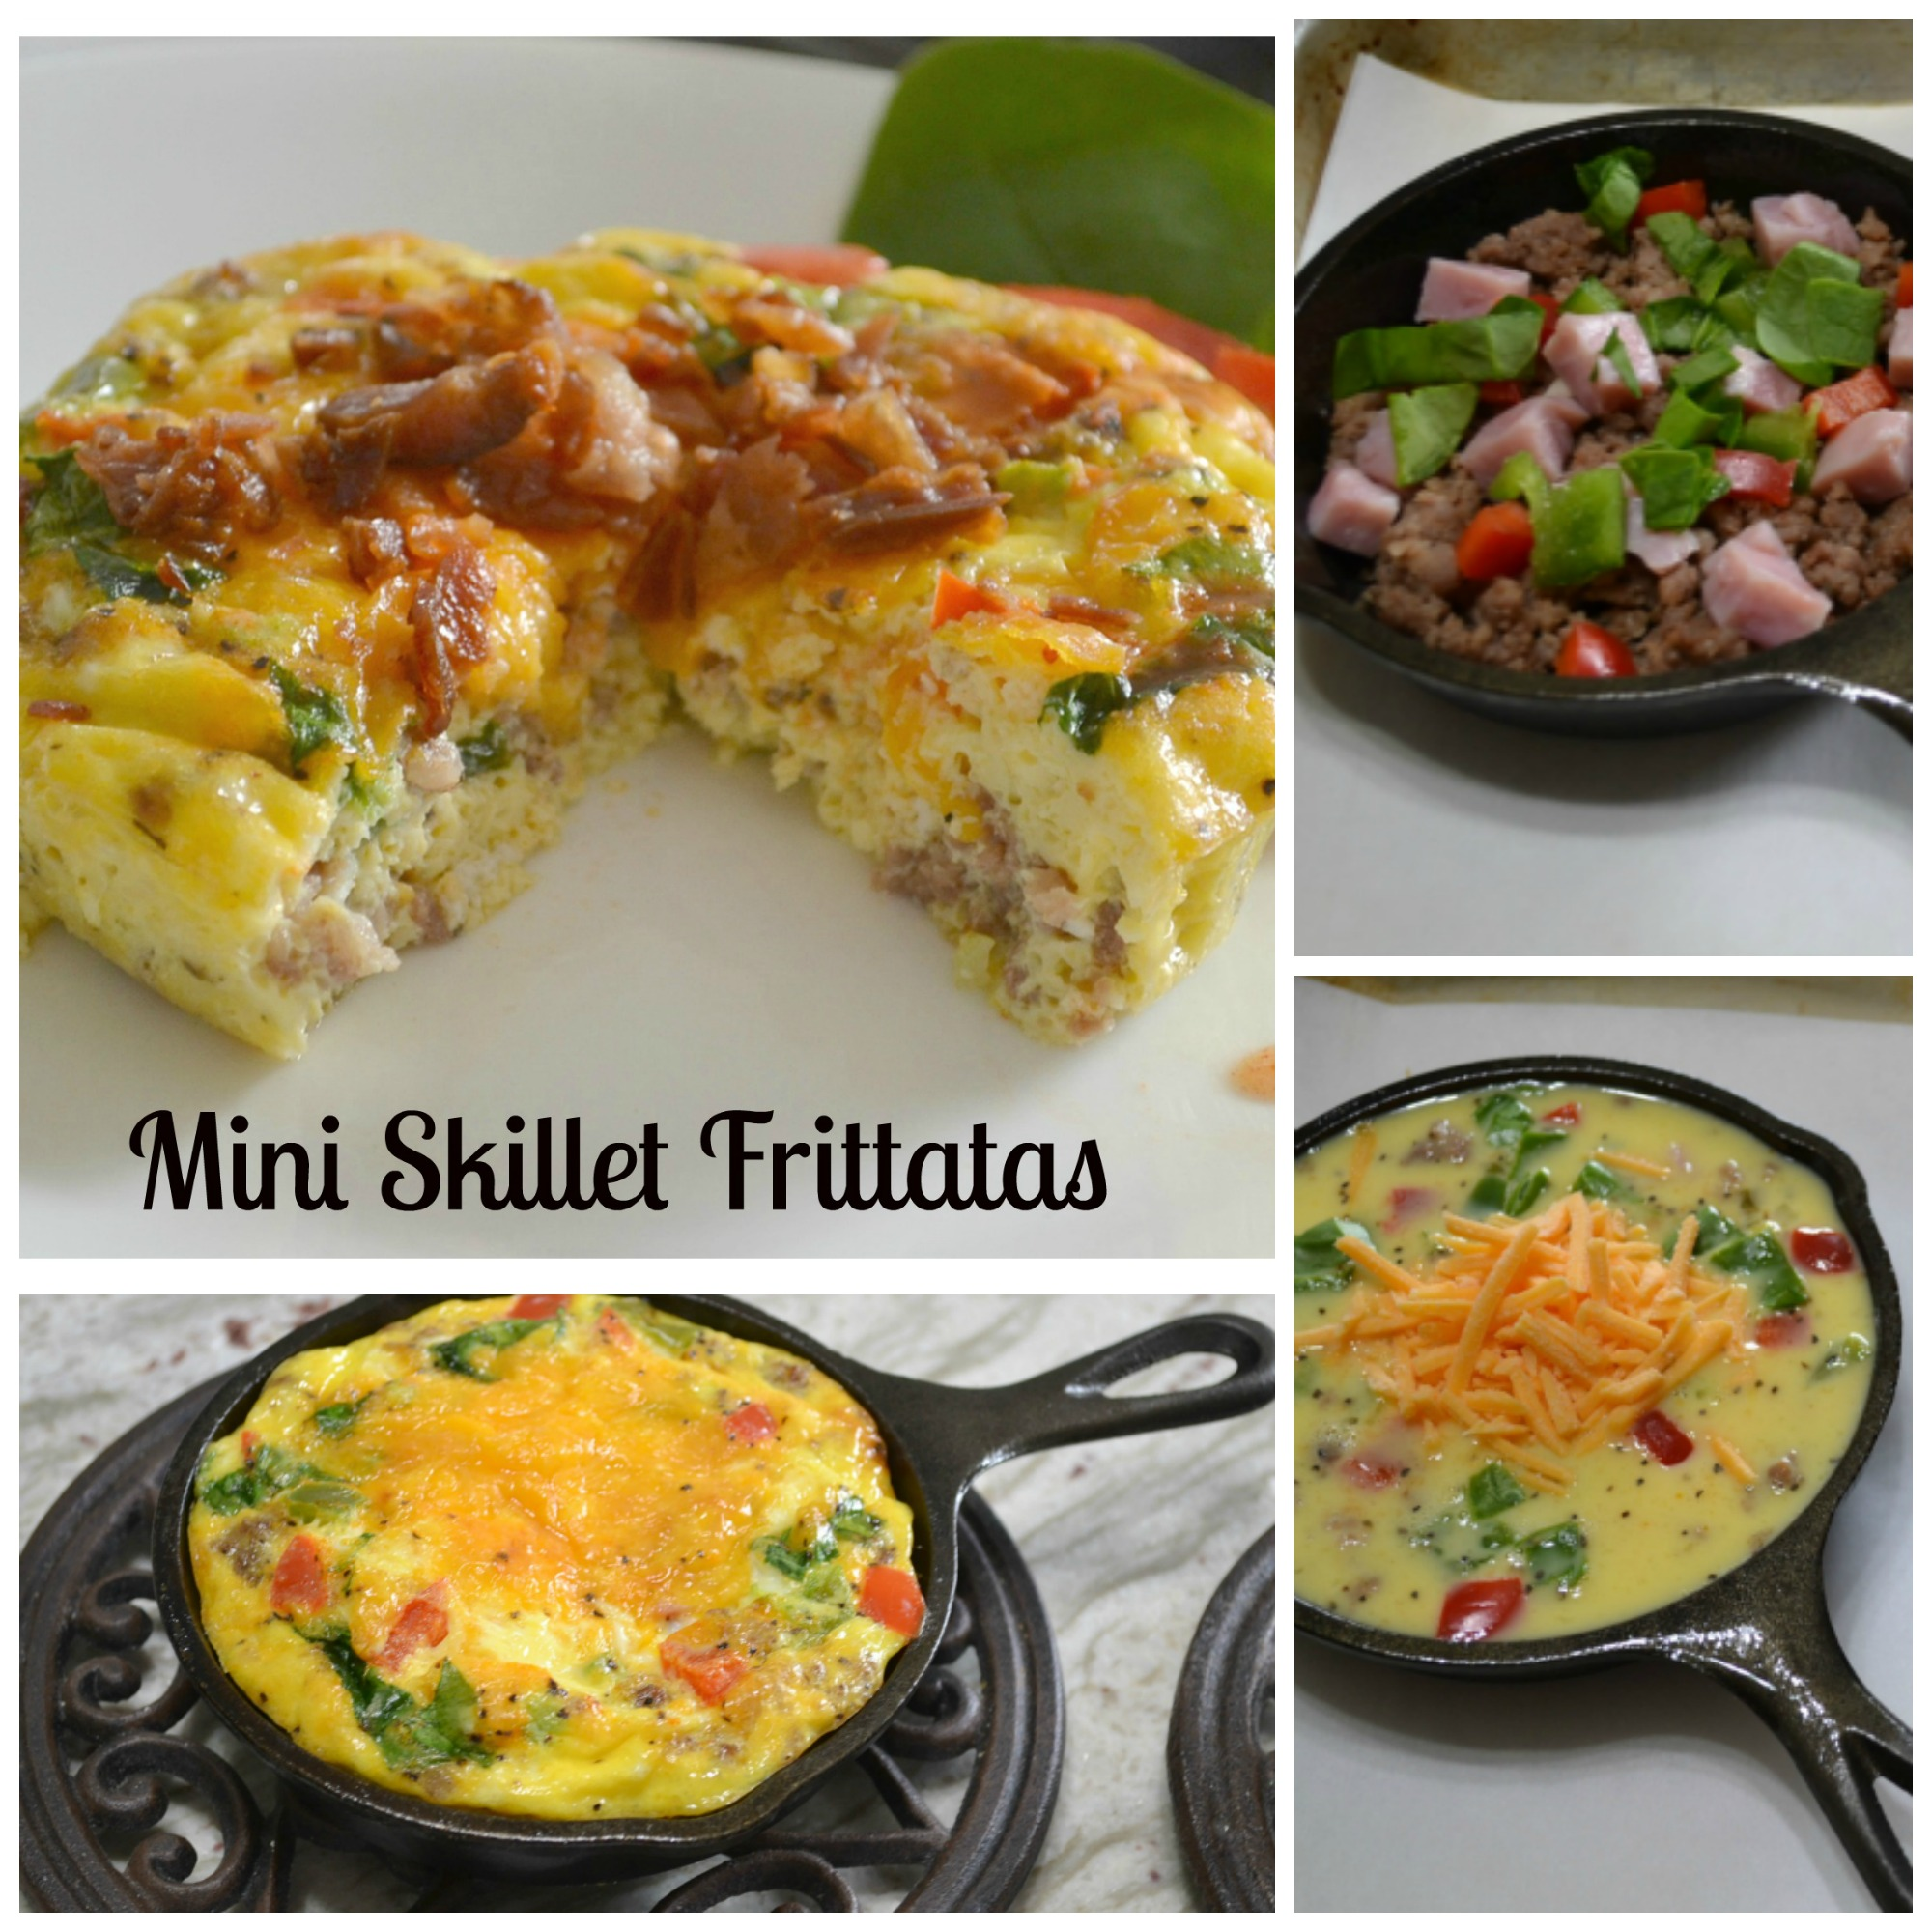 A delicious brekfast frittata made in a mini cast iron skillet. Packed with meats, veggies and cheese.